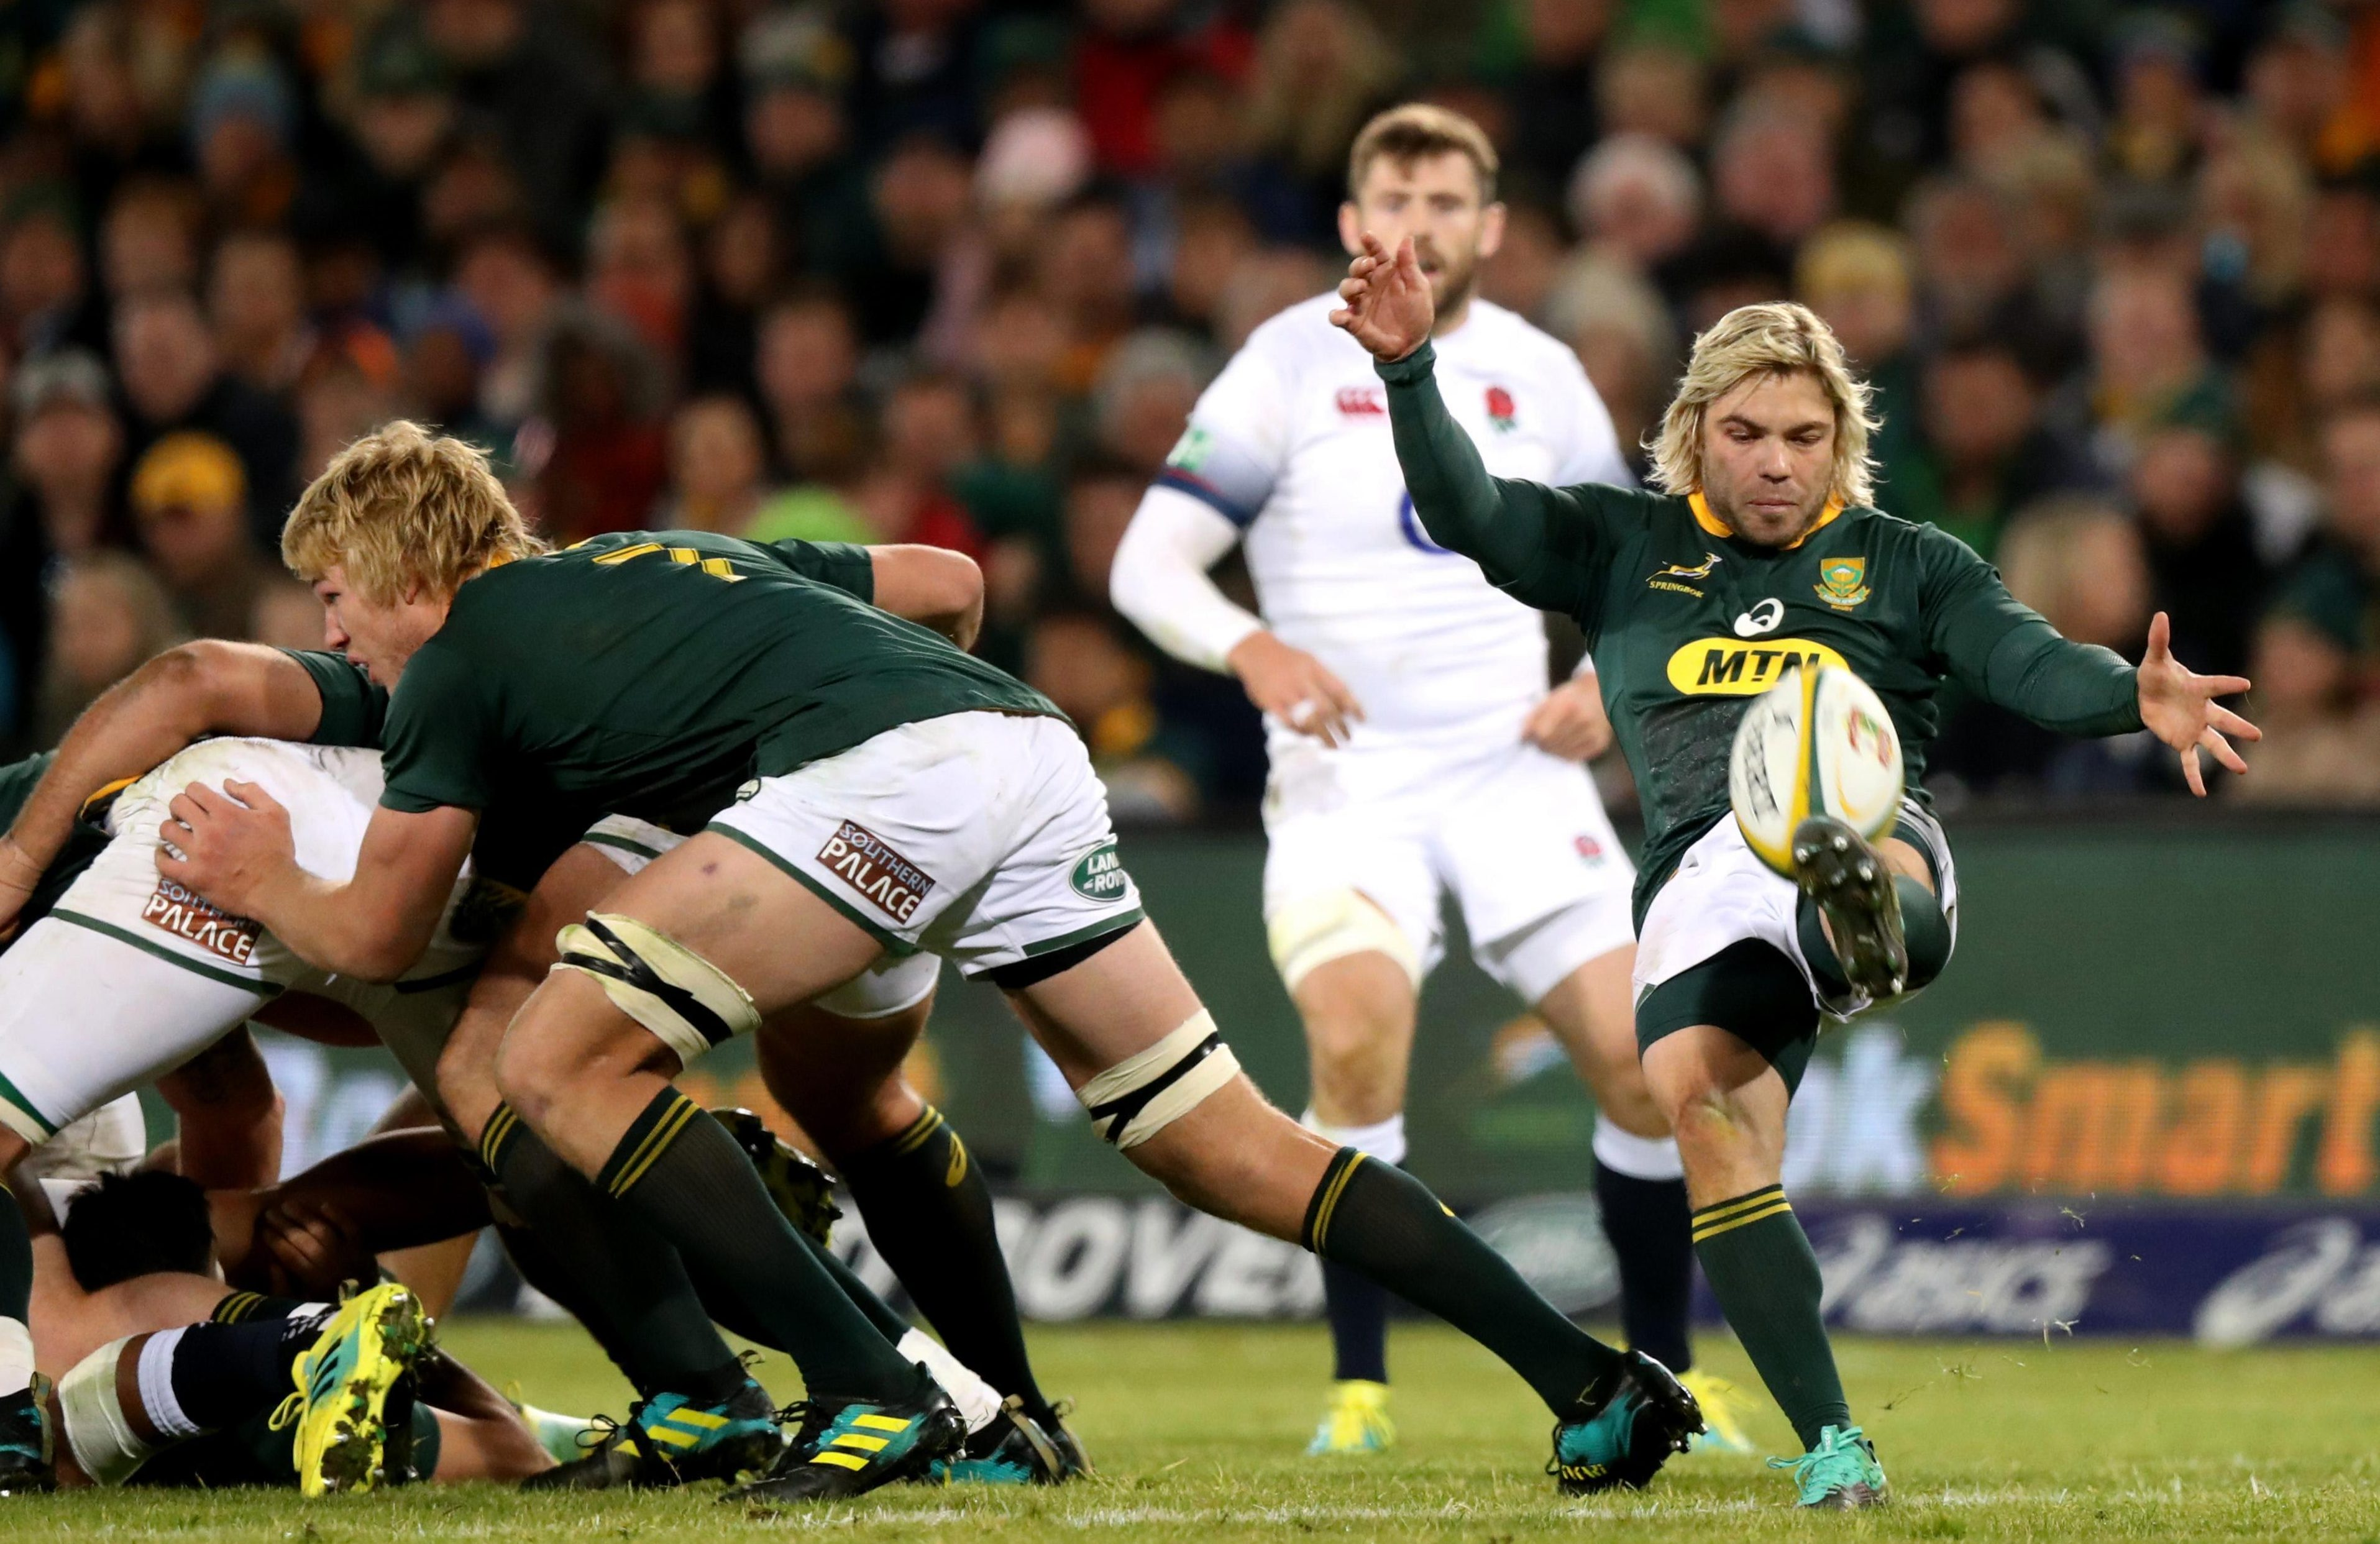 The likes of Faf de Klerk will have to be stopped if England want to taste victory